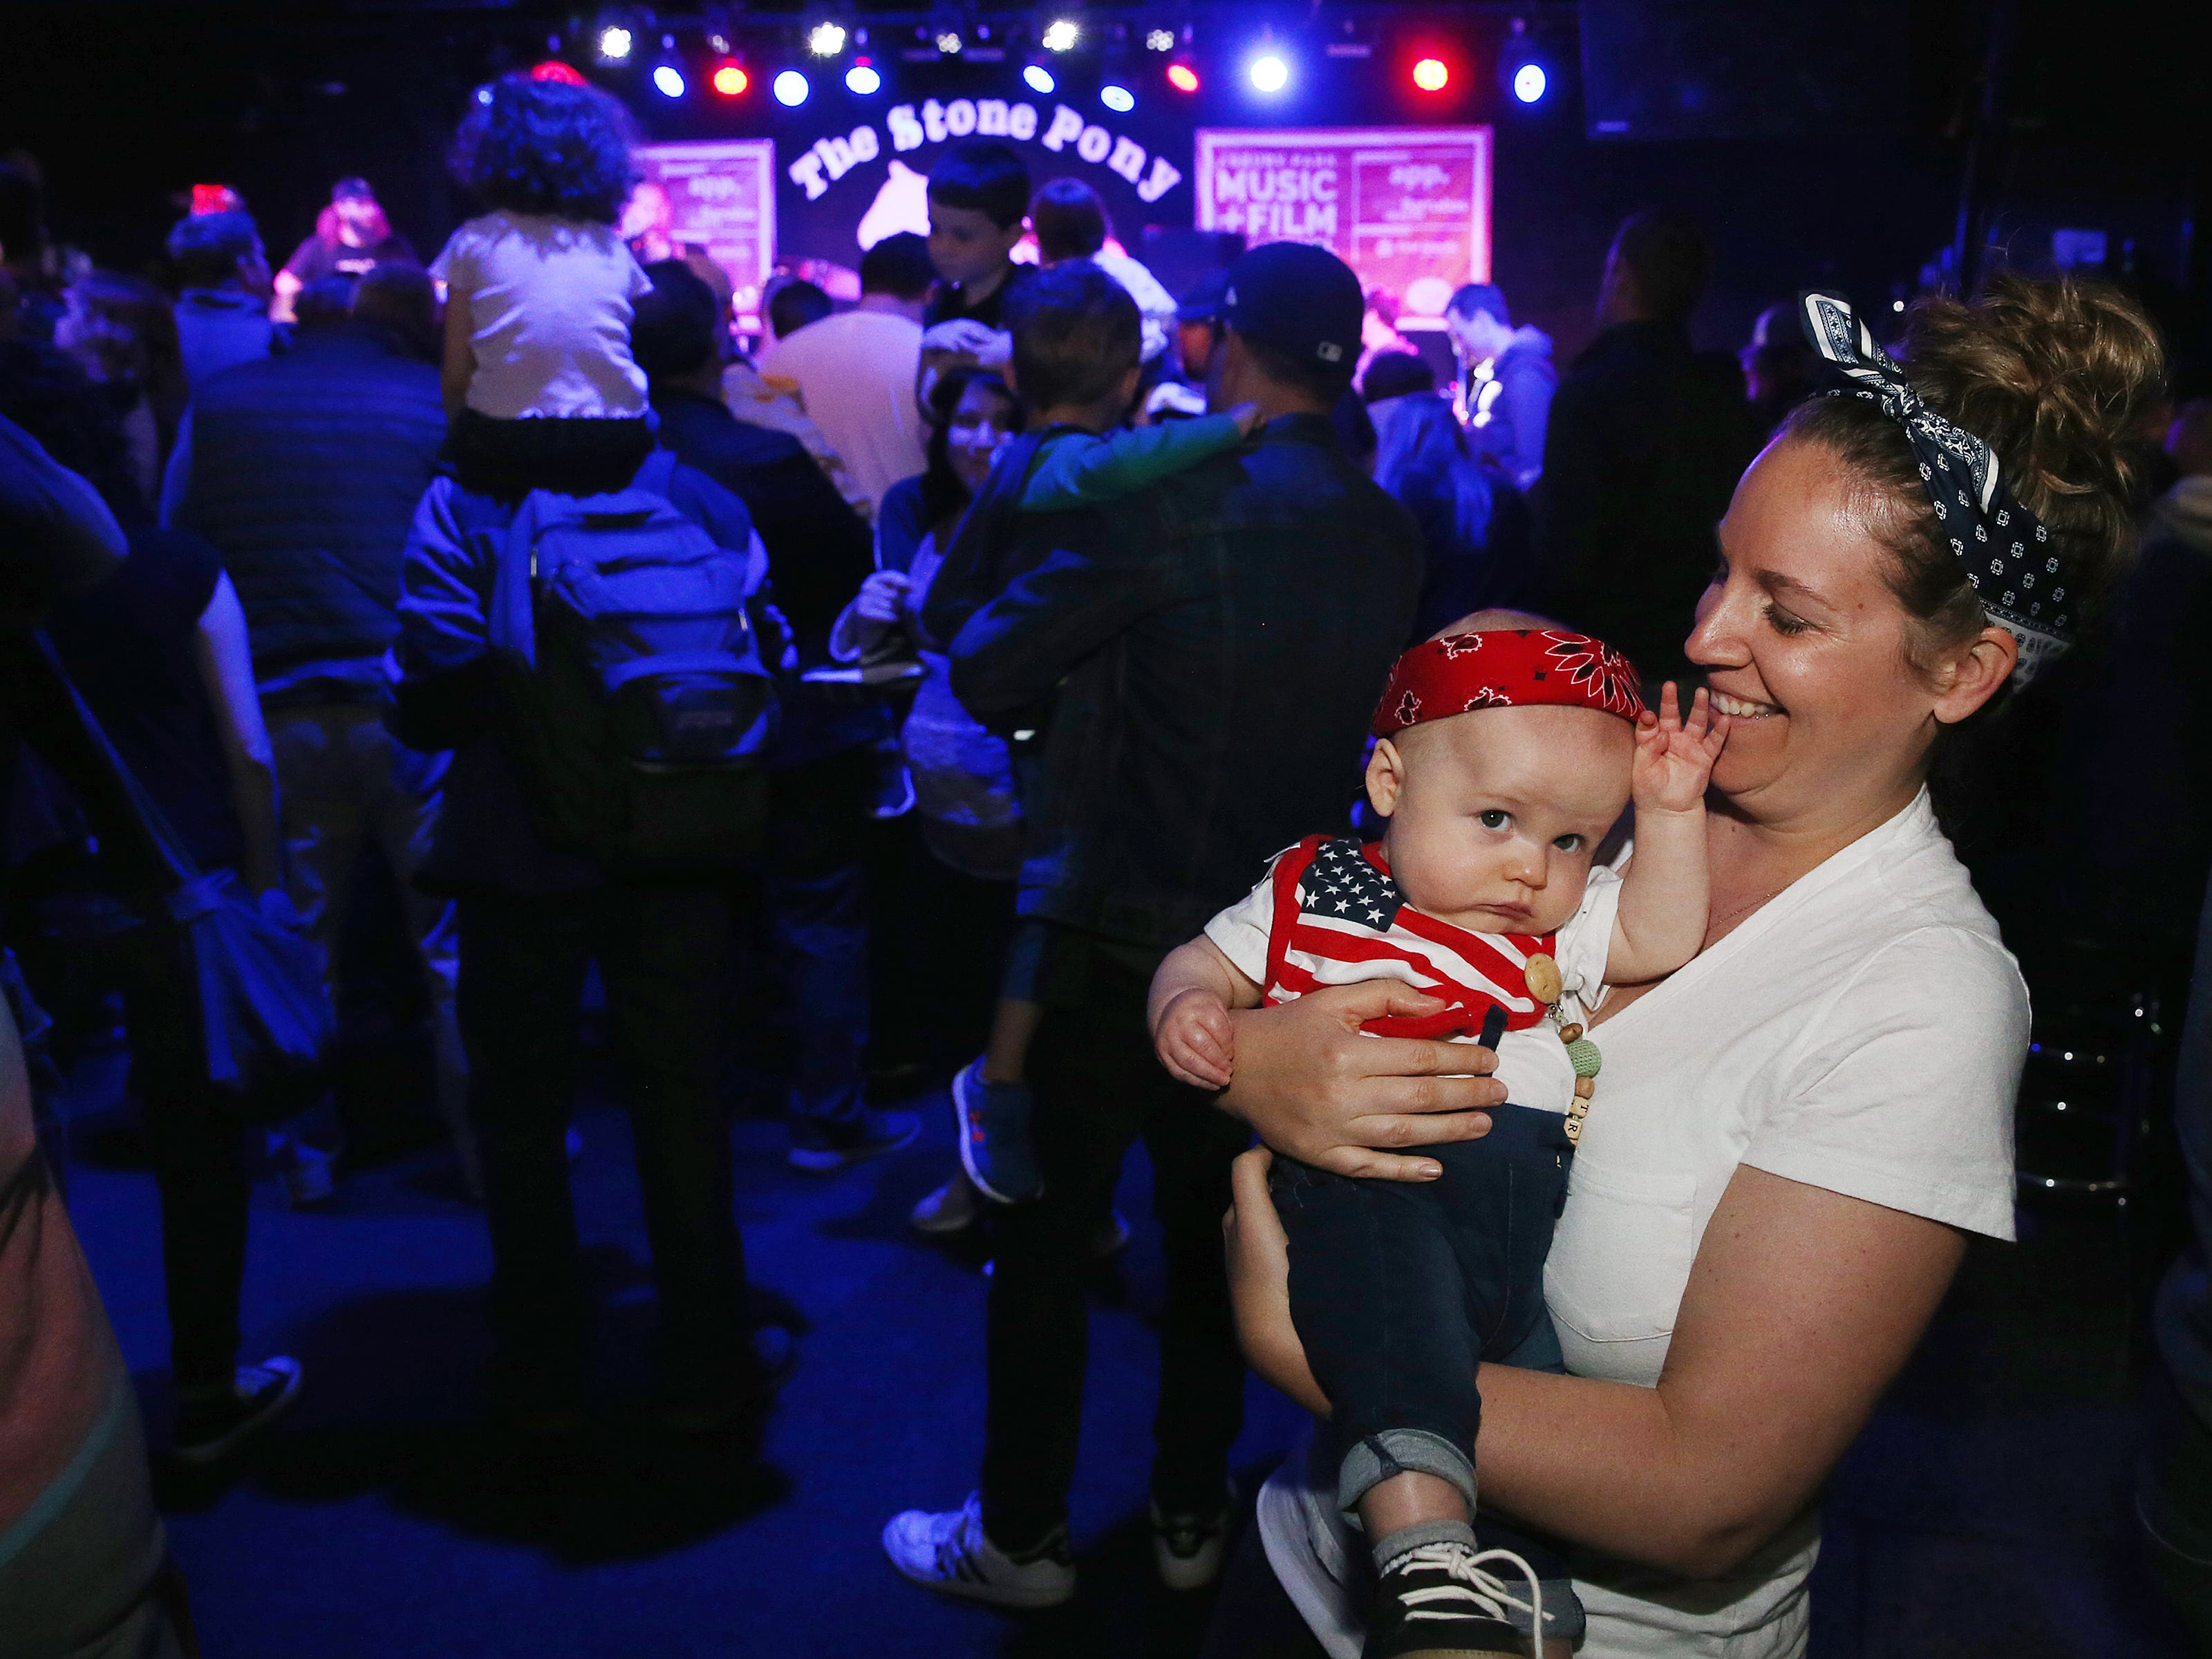 Dressed as Bruce Springsteen, Travis Stonaker, 7-months, of Ocean Twp. dances with his mother, Christina Stonaker, as the Rock and Roll Playhouse presents the Music of Bruce Springsteen for Kids at the Stone Pony during the Asbury Park Music and Film Festival in Asbury Park, NJ Sunday, April 28, 2019.  #APMFF